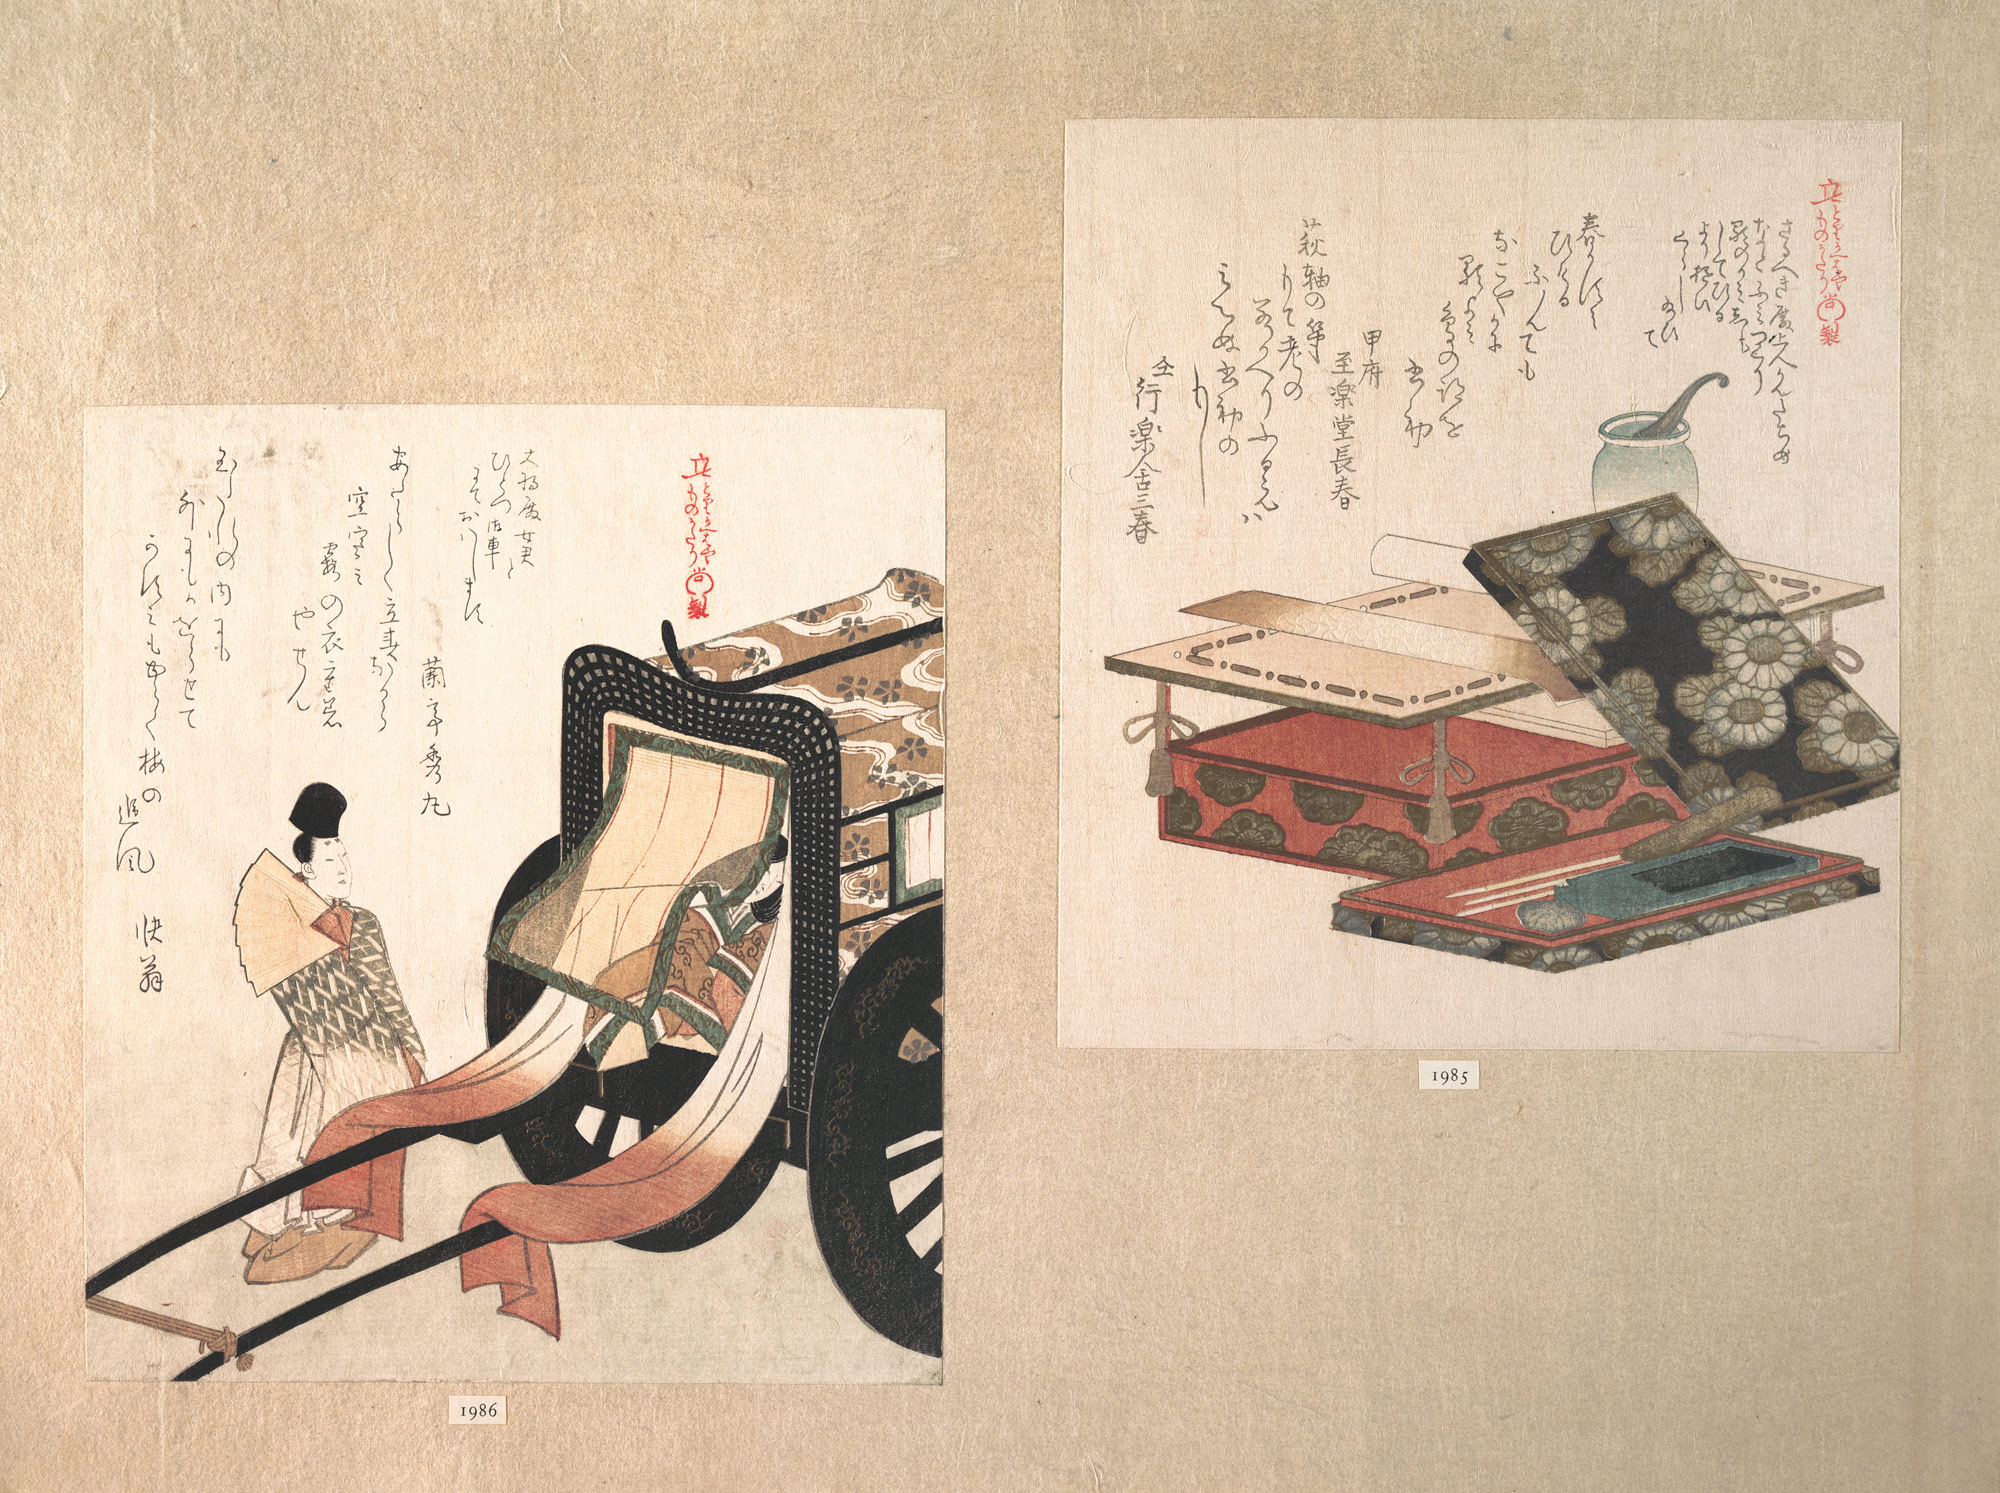 The culture of Heian Period in Japan